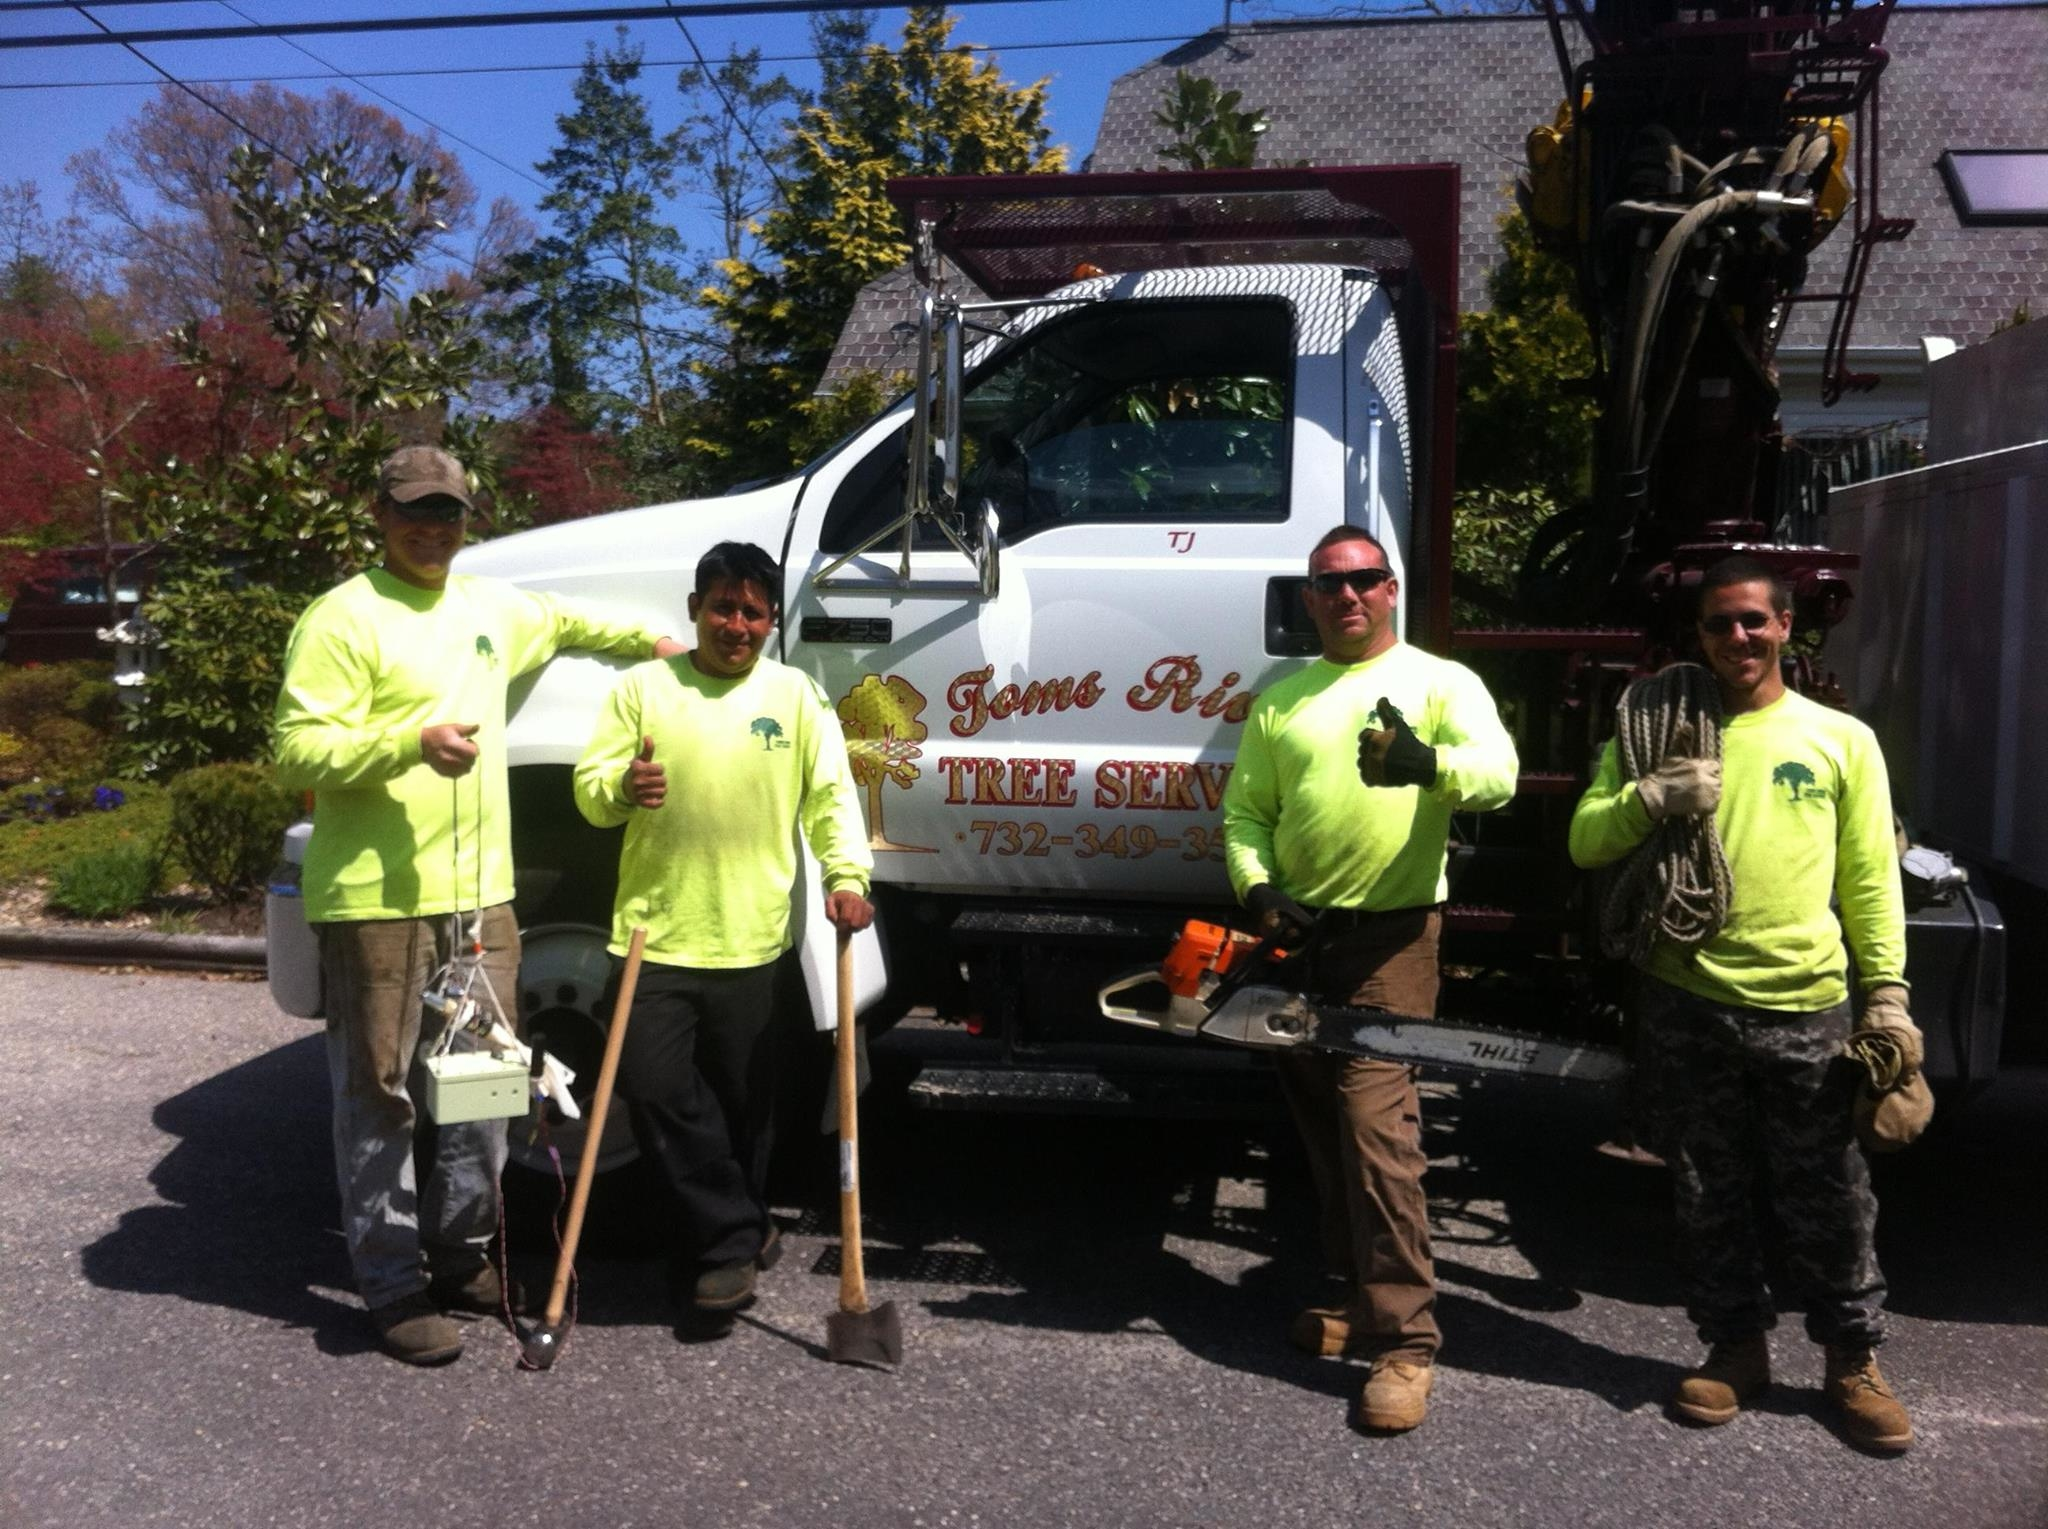 Toms River Tree Service image 3